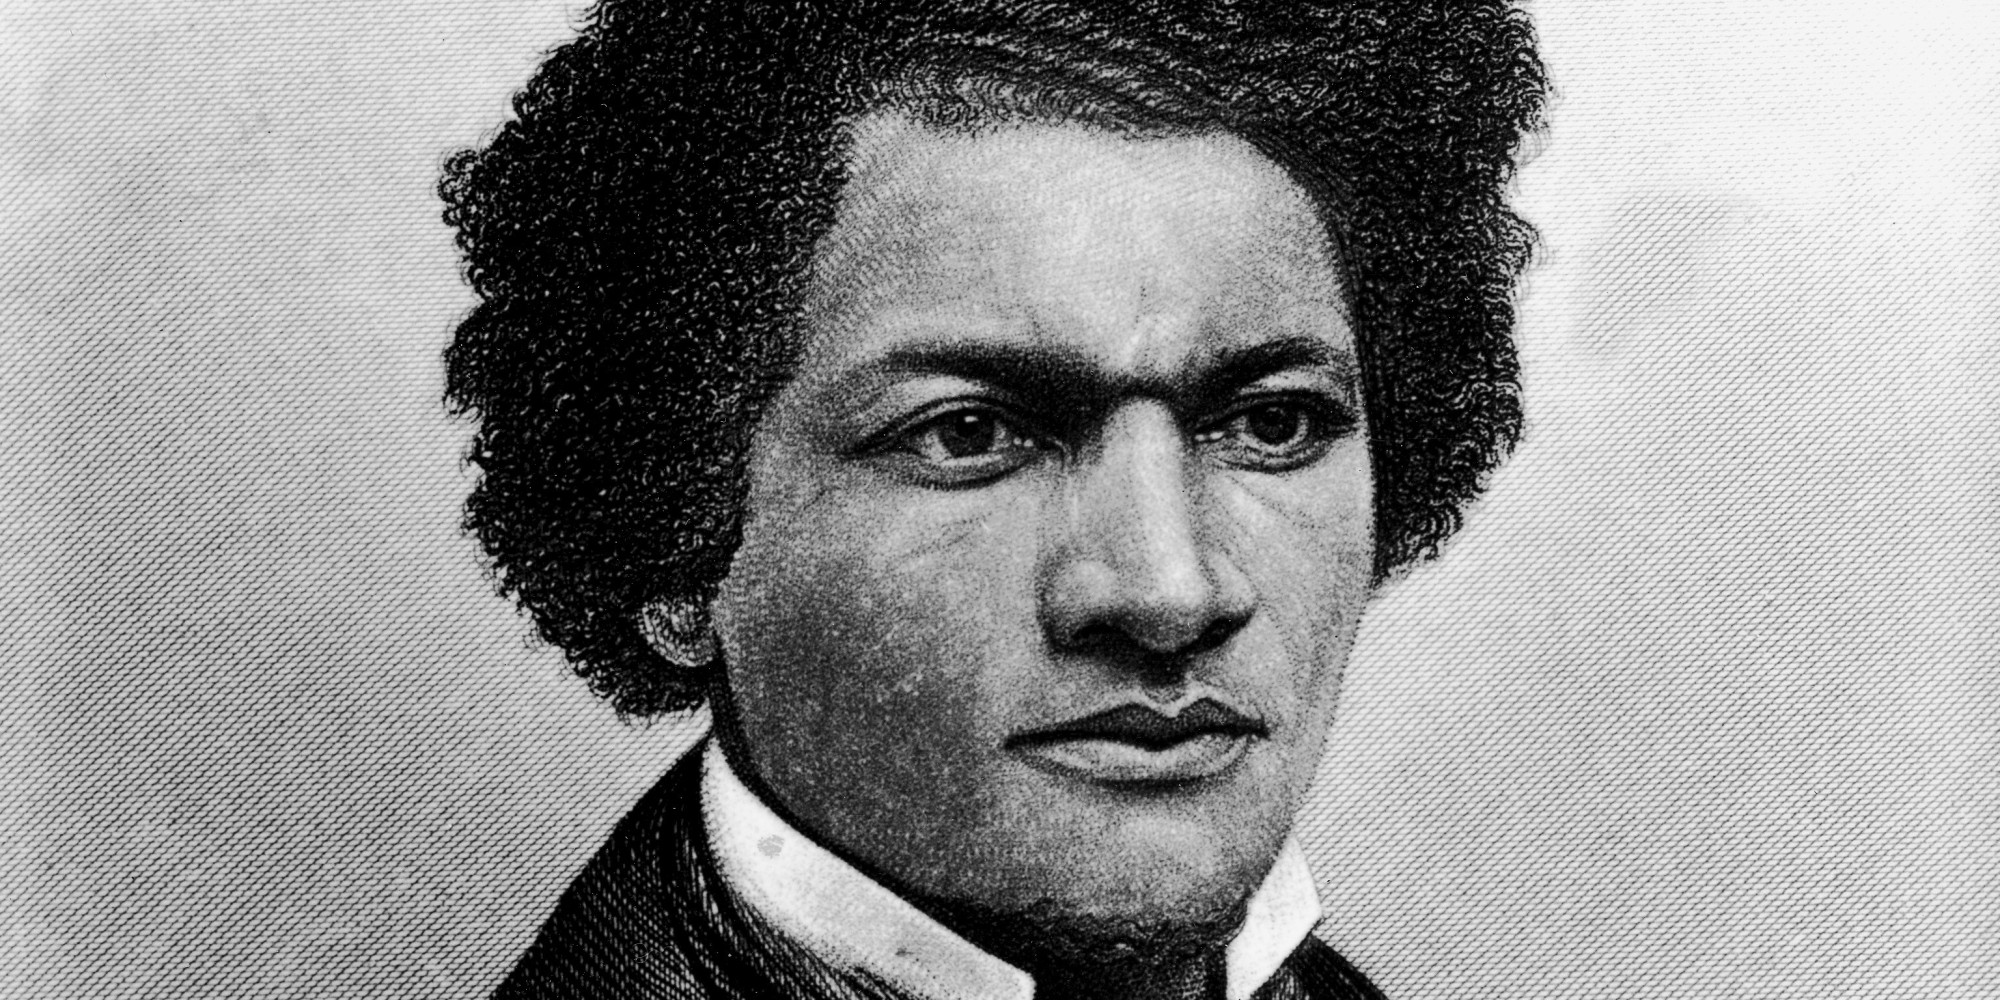 a brief biography of frederick douglass and his return to the united states Less well known than frederick douglass or charles lenox remond, who were his contemporaries, henry highland garnet was early  of the united states.